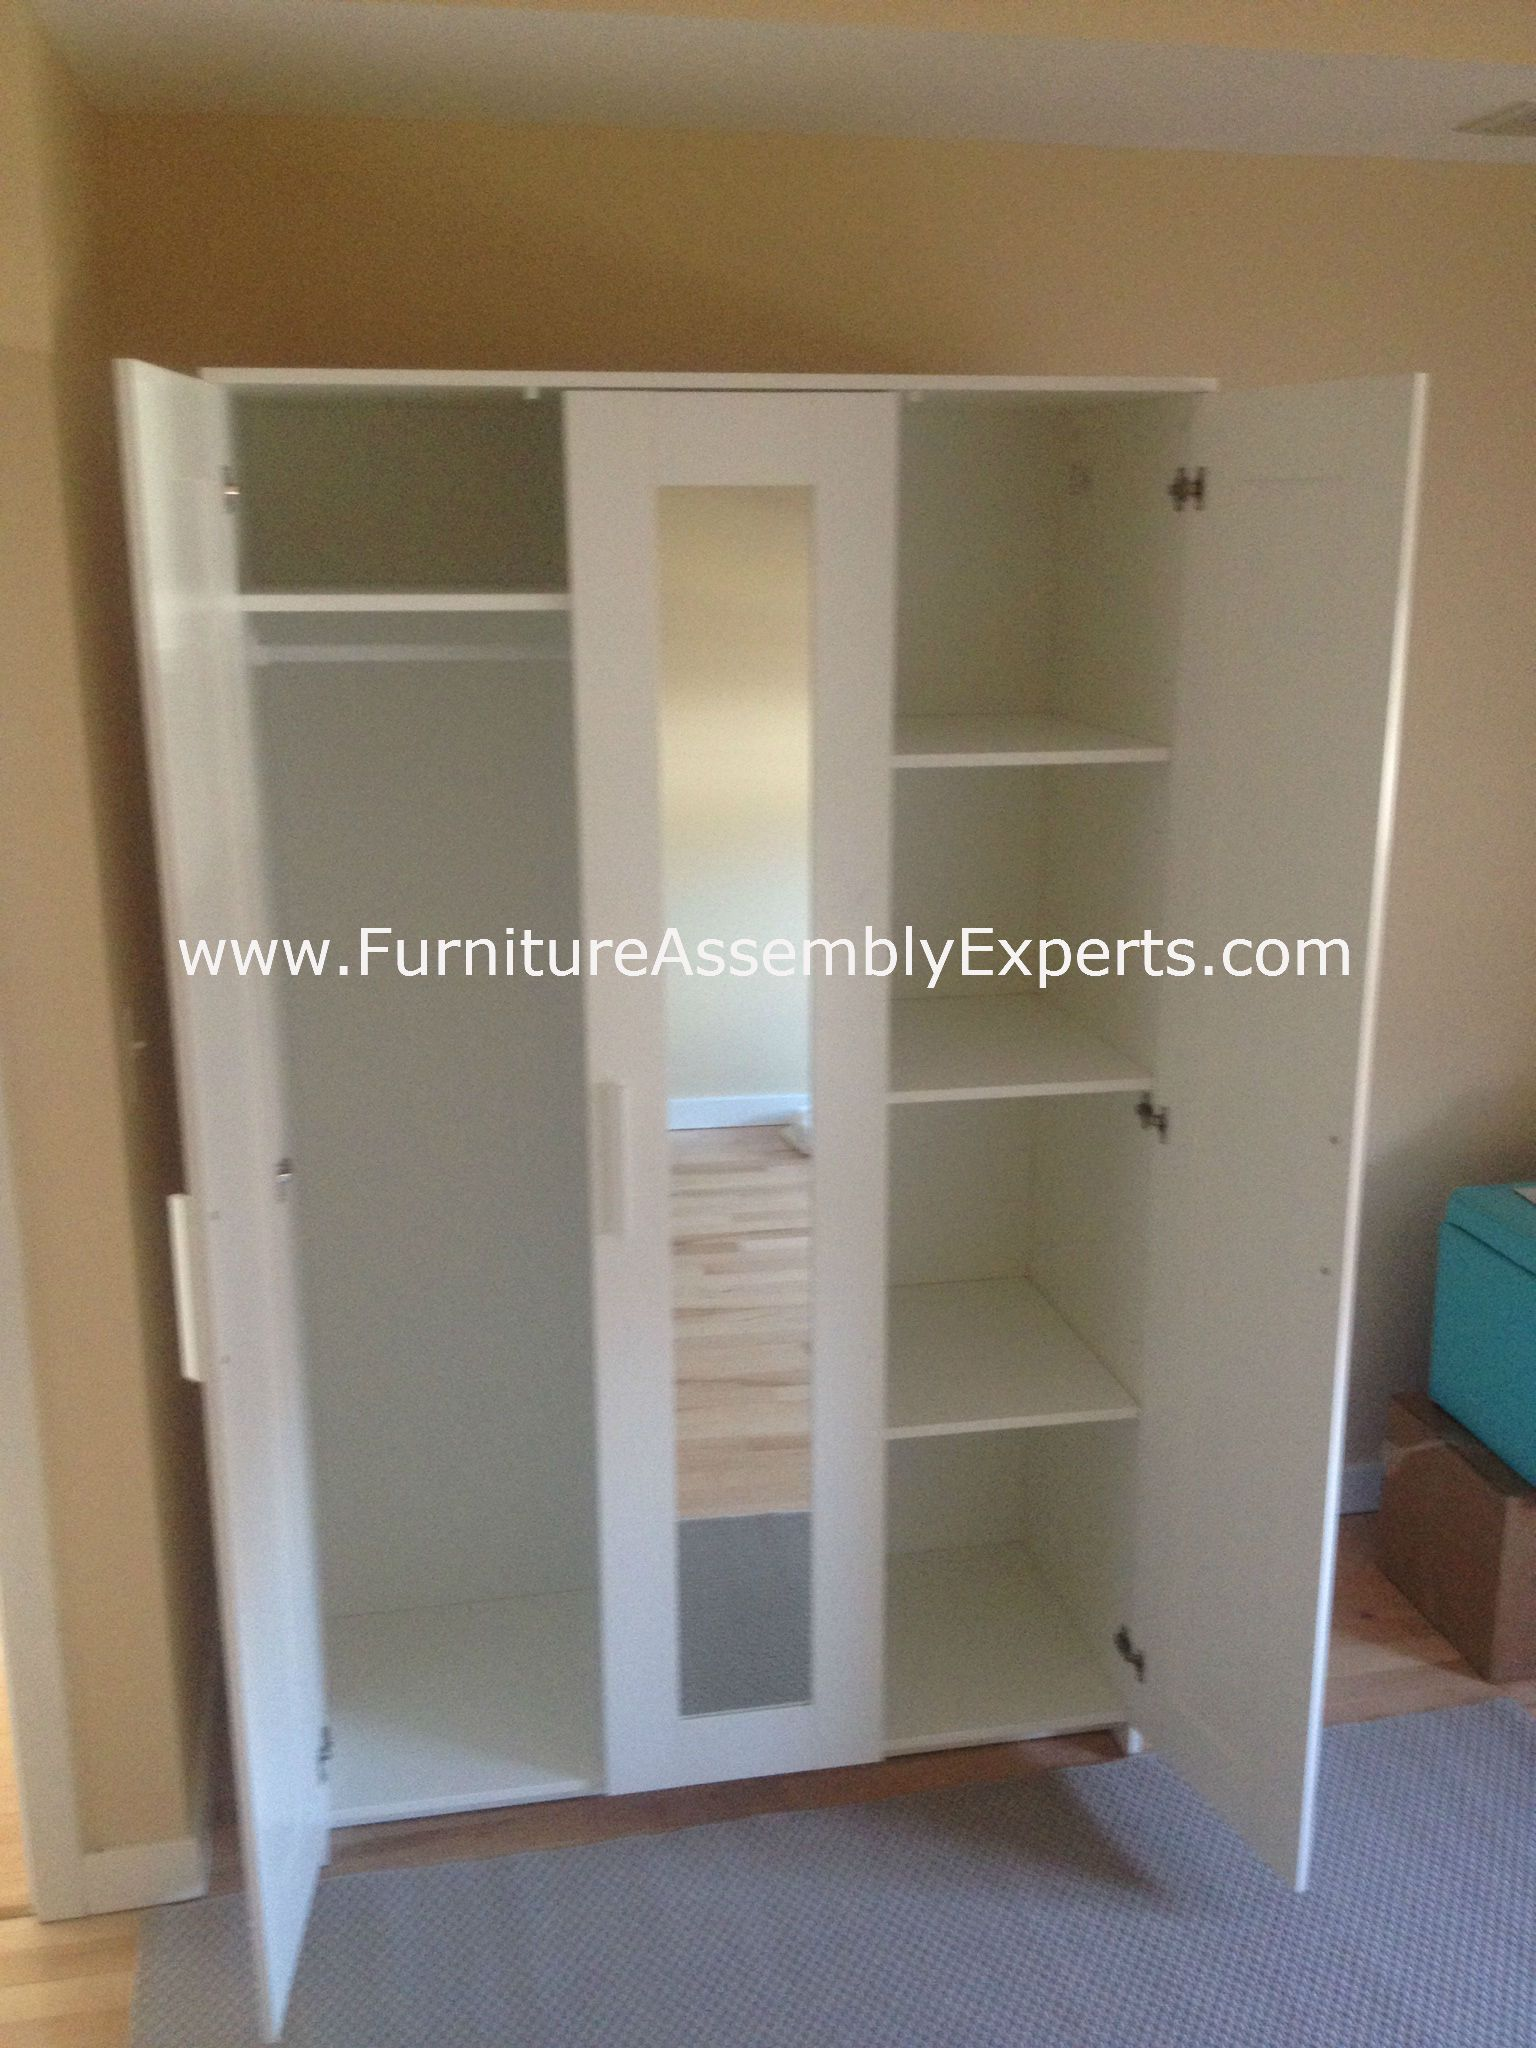 Ikea Brimnes Wardrobe Assembled In Philadelphia PA By Furniture Assembly  Experts LLC